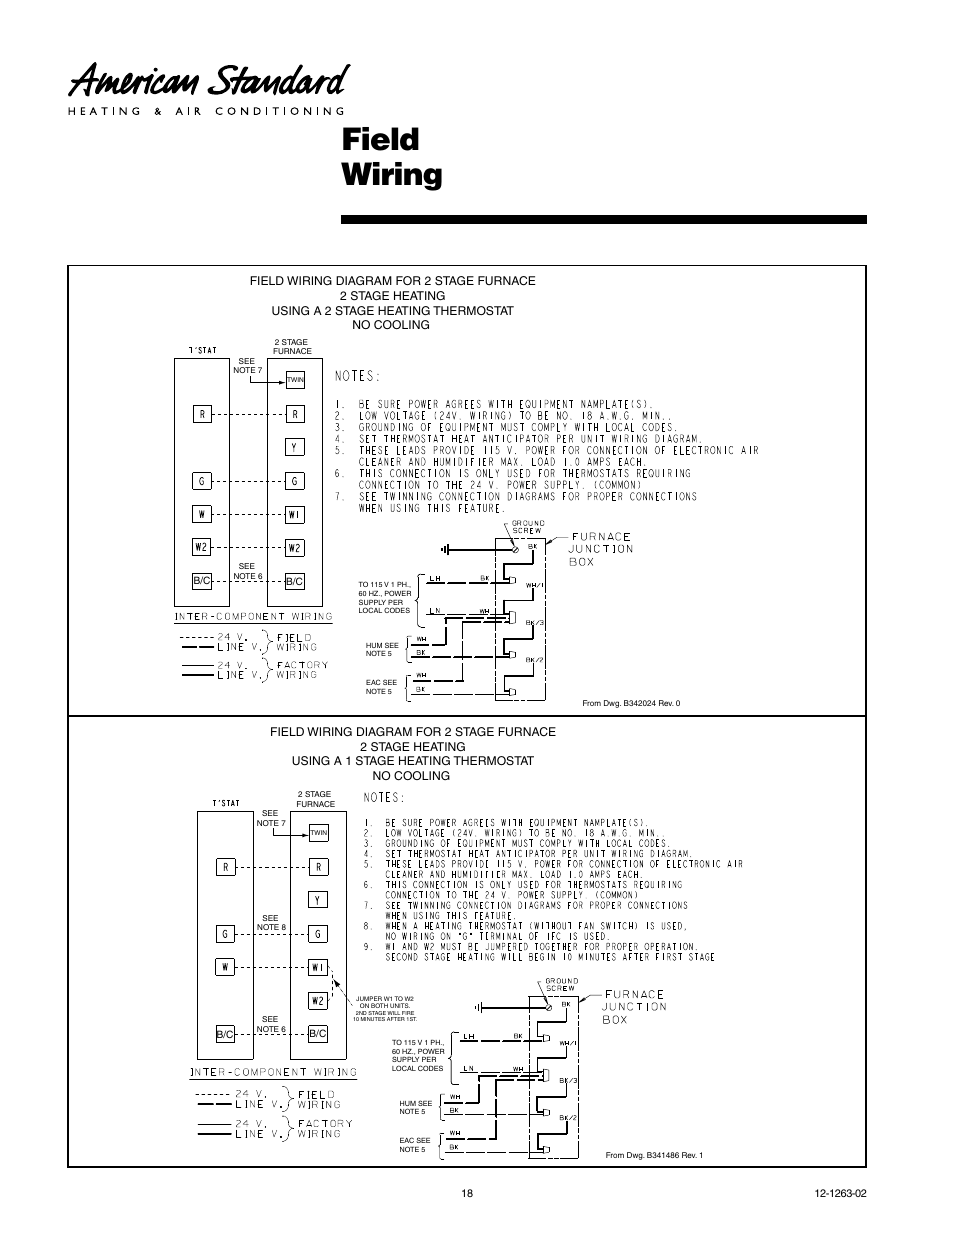 american standard freedom 80 page18 field wiring american standard freedom 80 user manual page 18 24 2-stage furnace thermostat wiring diagram at panicattacktreatment.co